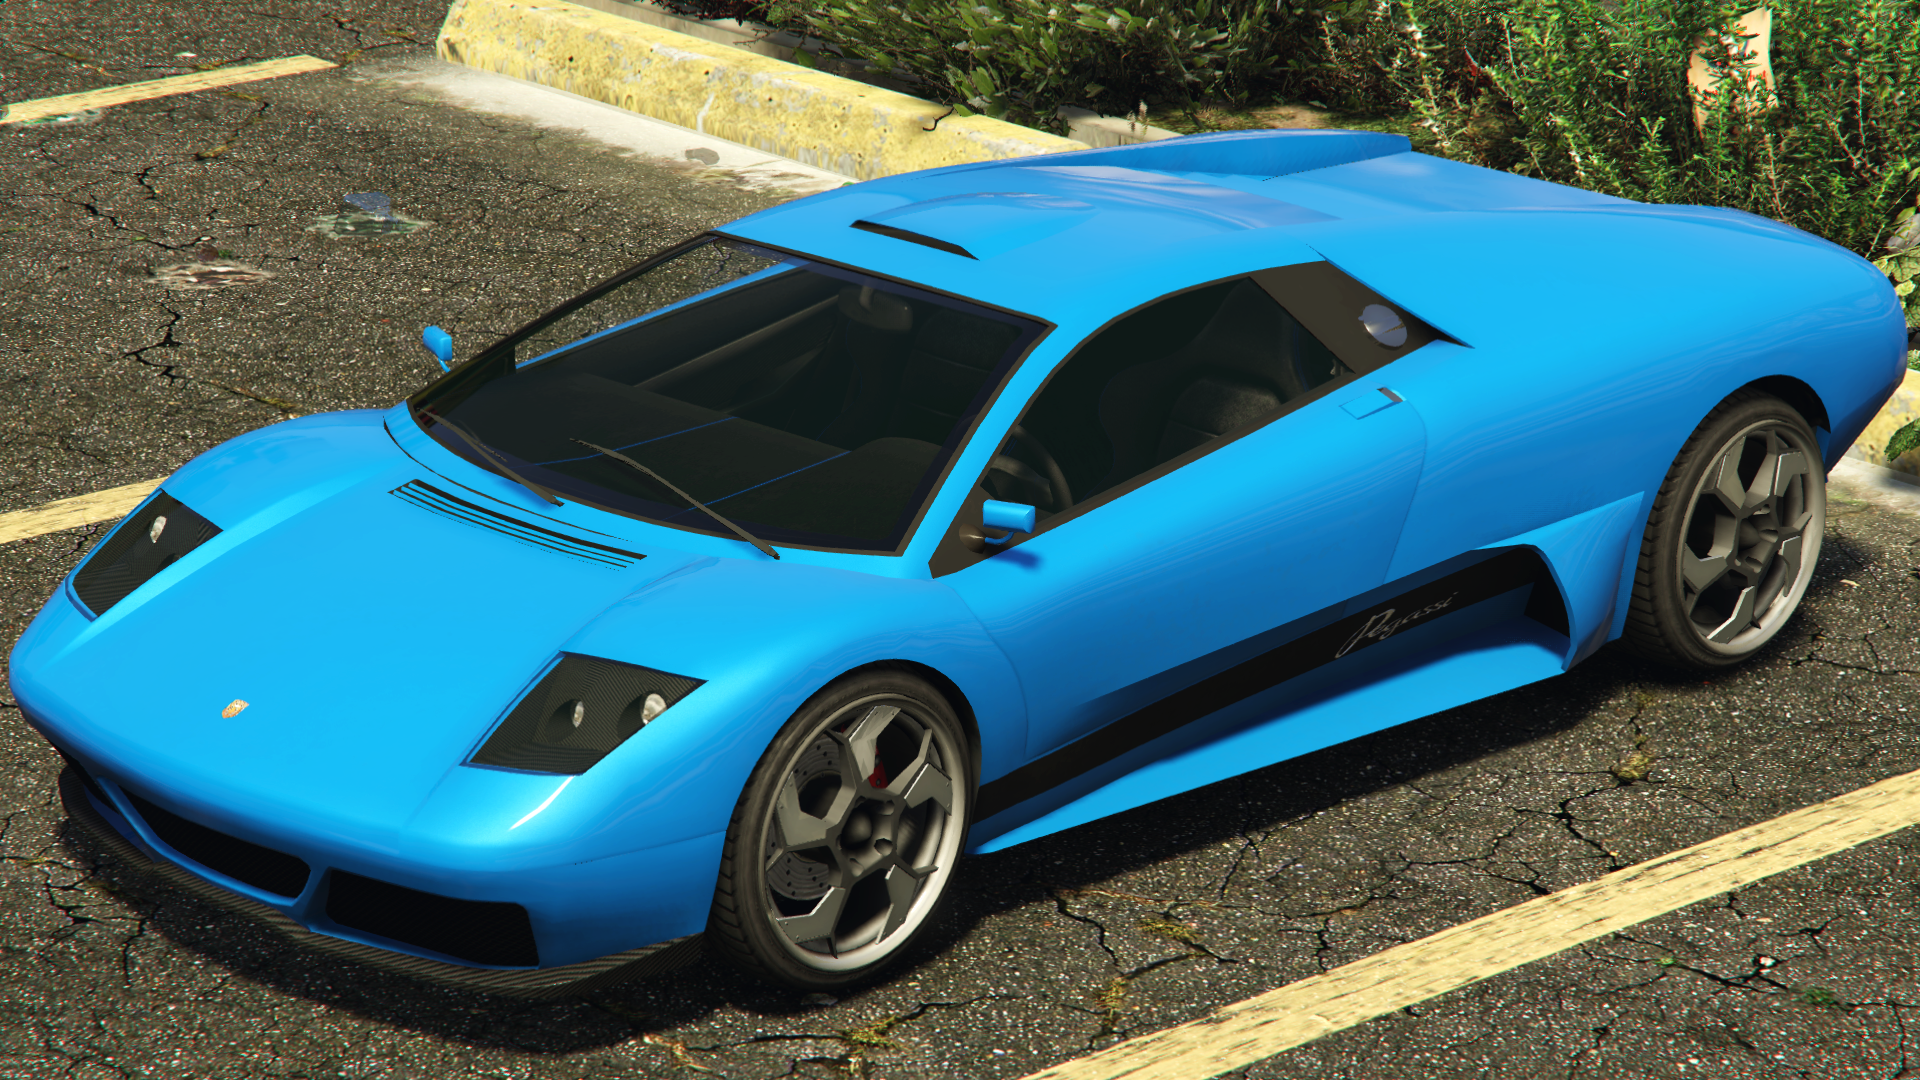 Infernus | GTA Wiki | FANDOM powered by Wikia